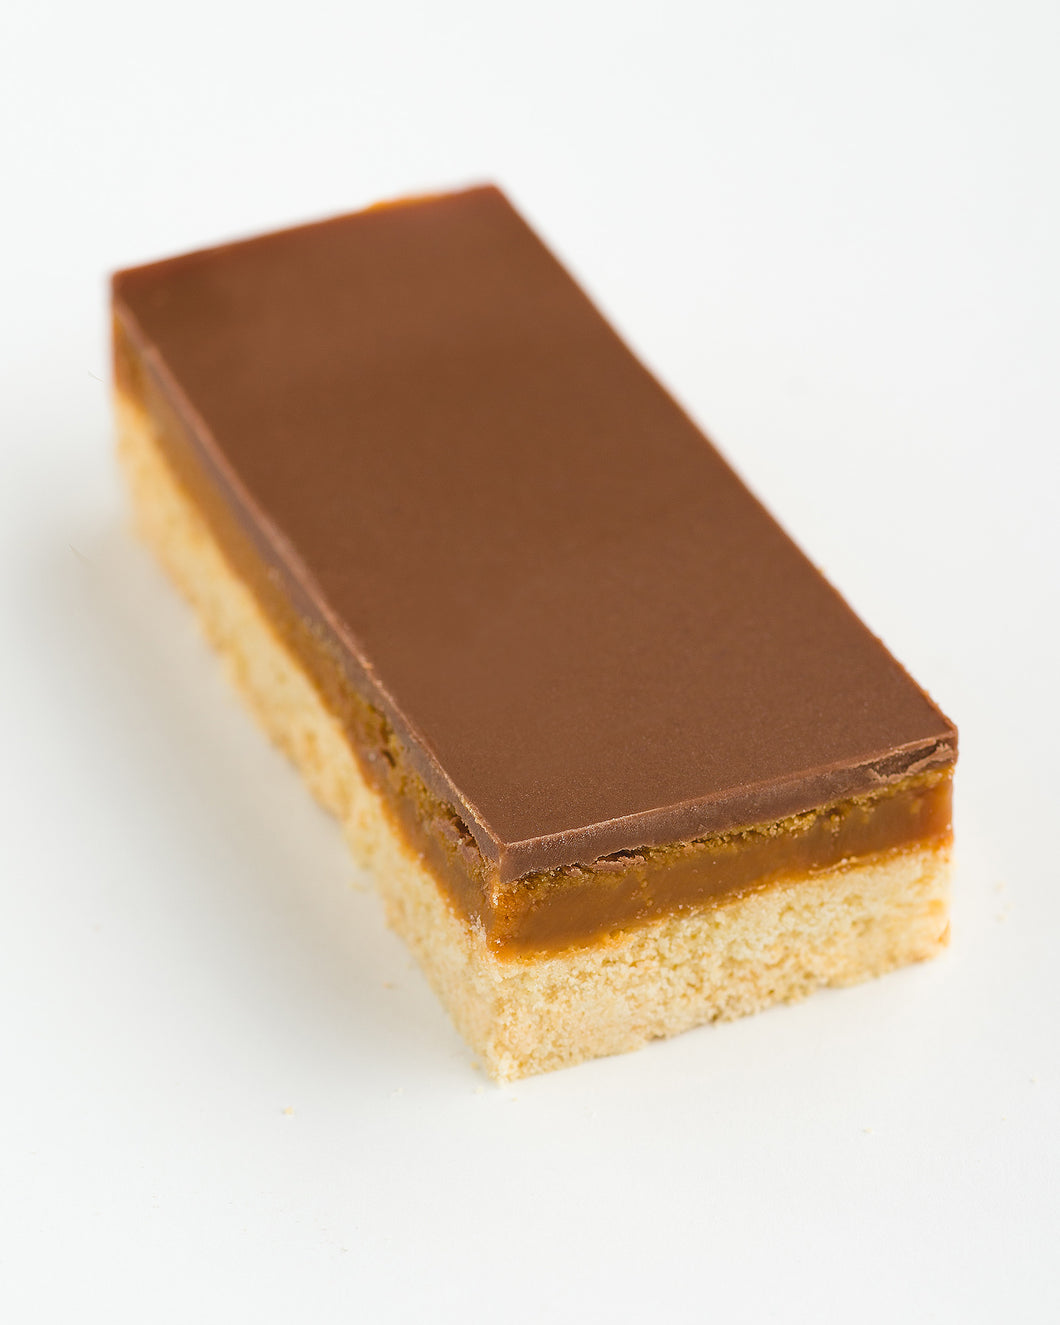 French Village Caramel Slice Tray (20-24 Portions)